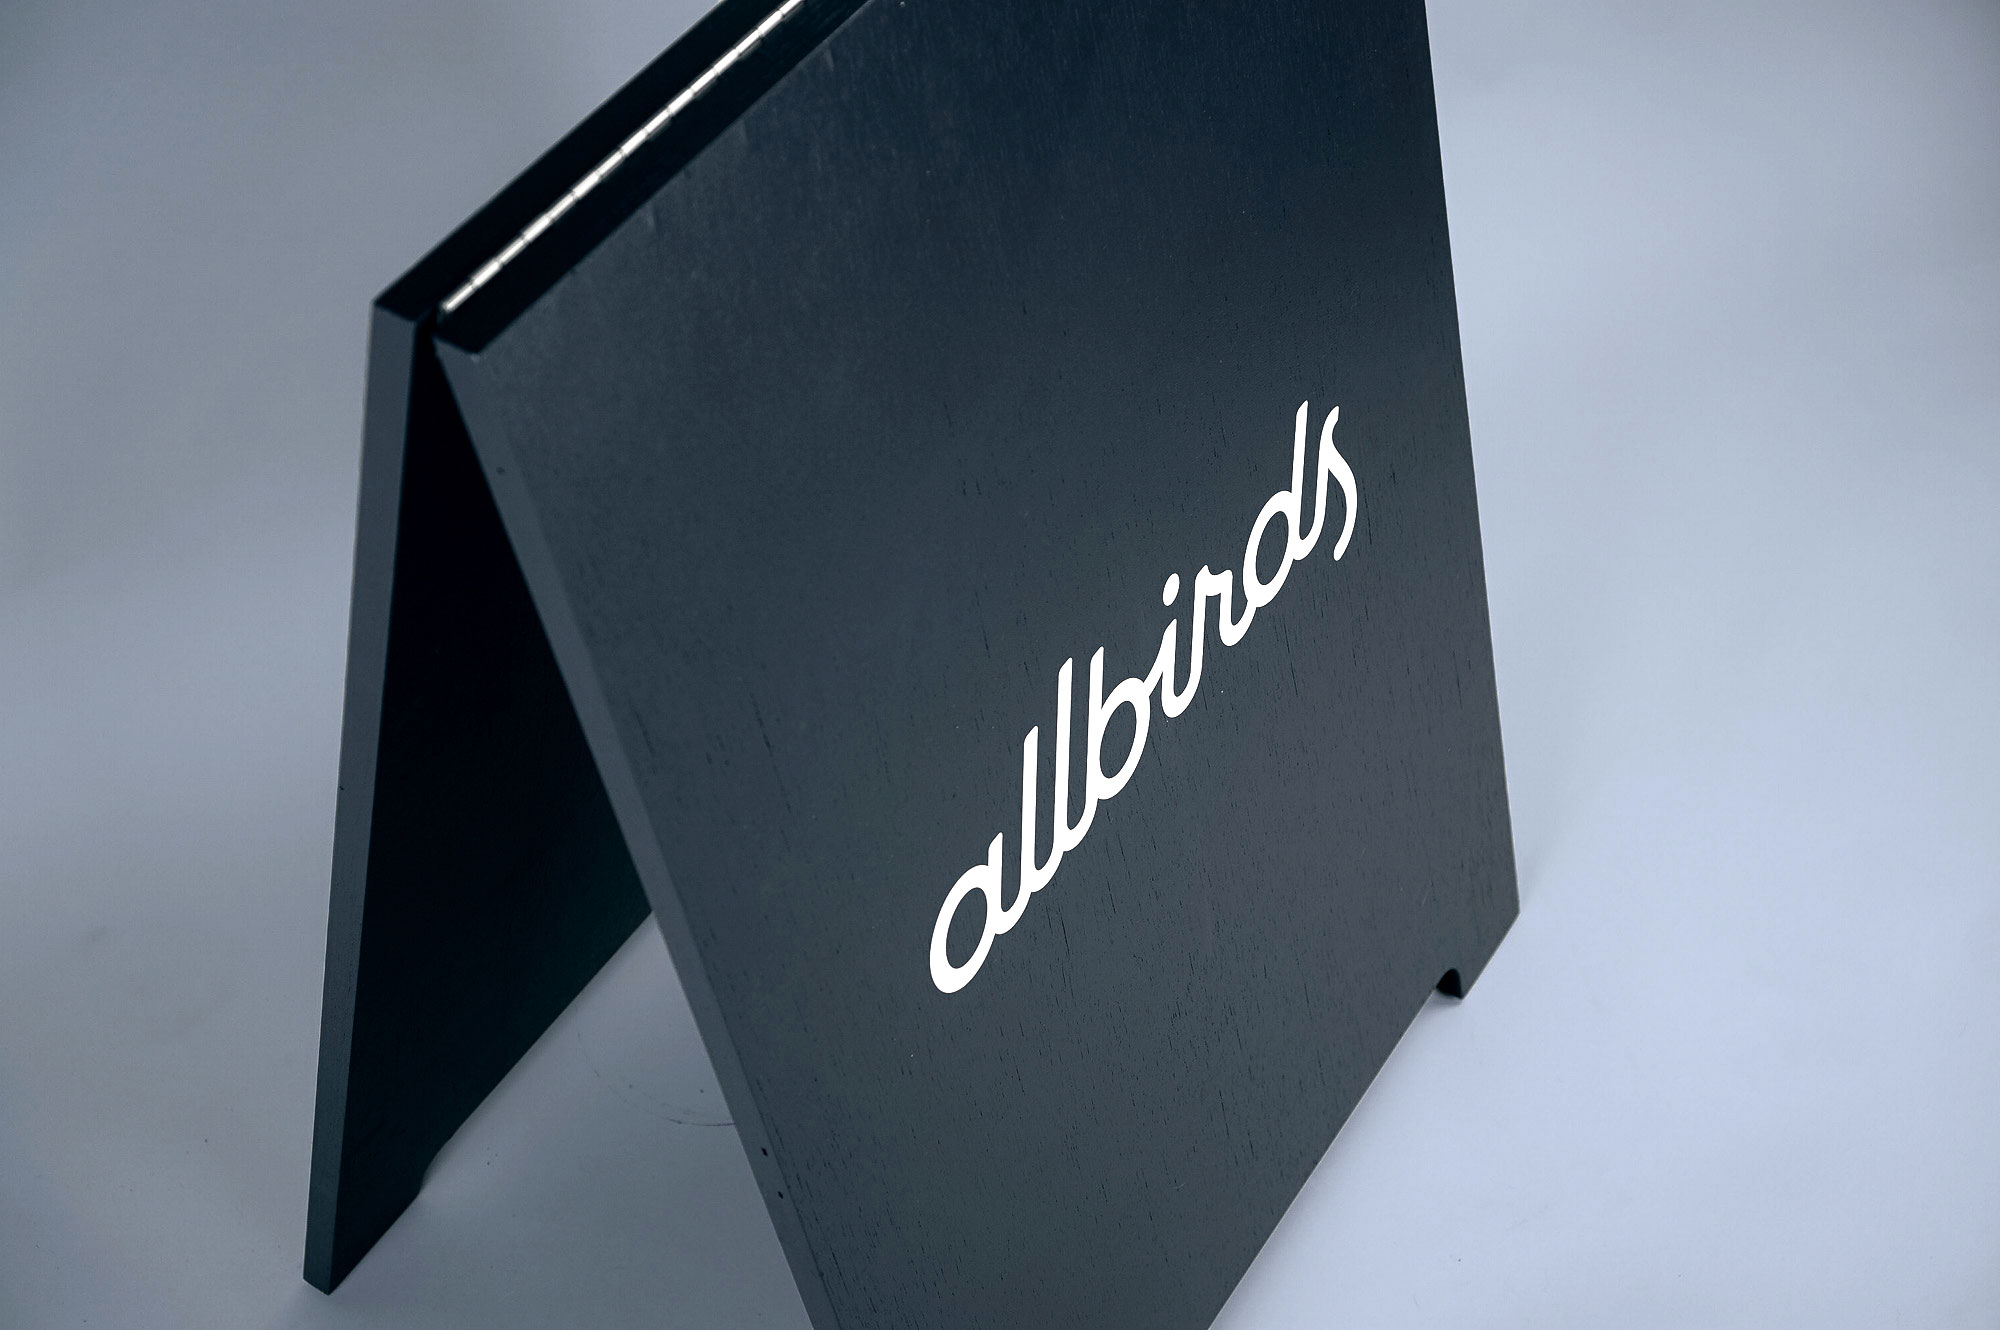 Minimalist black and white A-frame for Allbirds, a San Francisco-based direct-to-consumer startup aimed at designing environmentally friendly footwear.